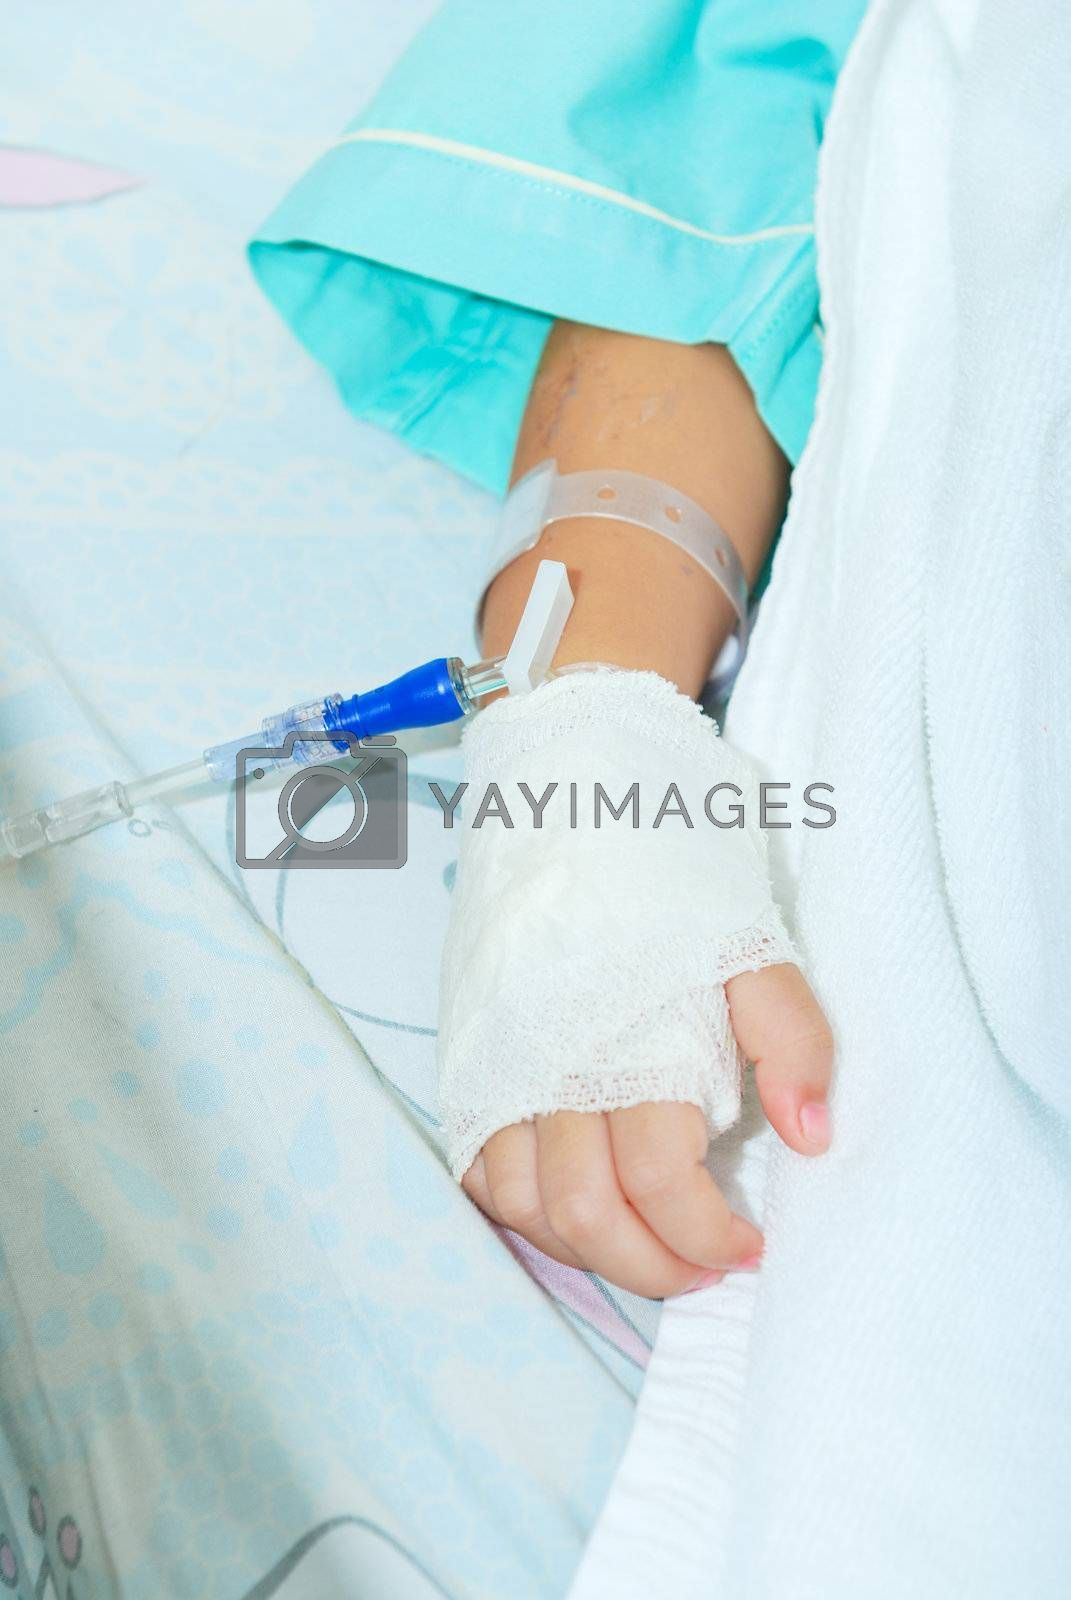 Royalty free image of Hand of sick little girl at hospital by teen00000